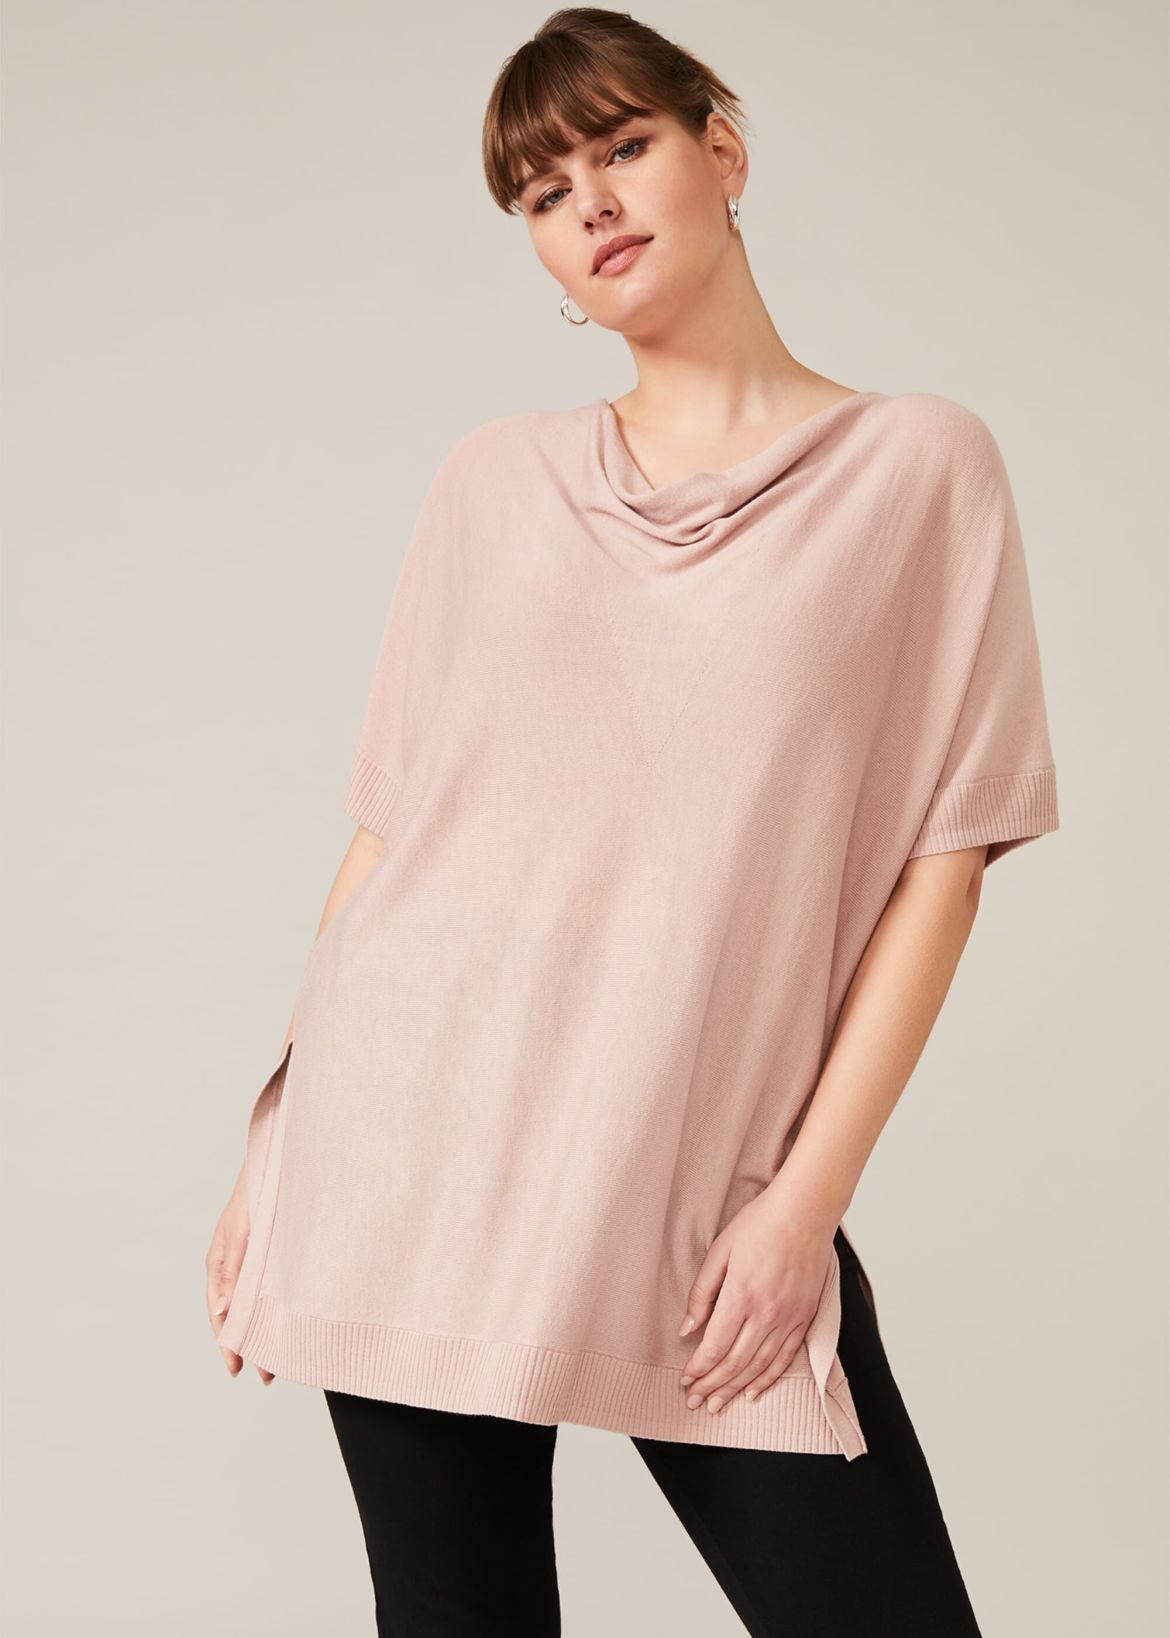 Trudy Cowl Neck Knit Top